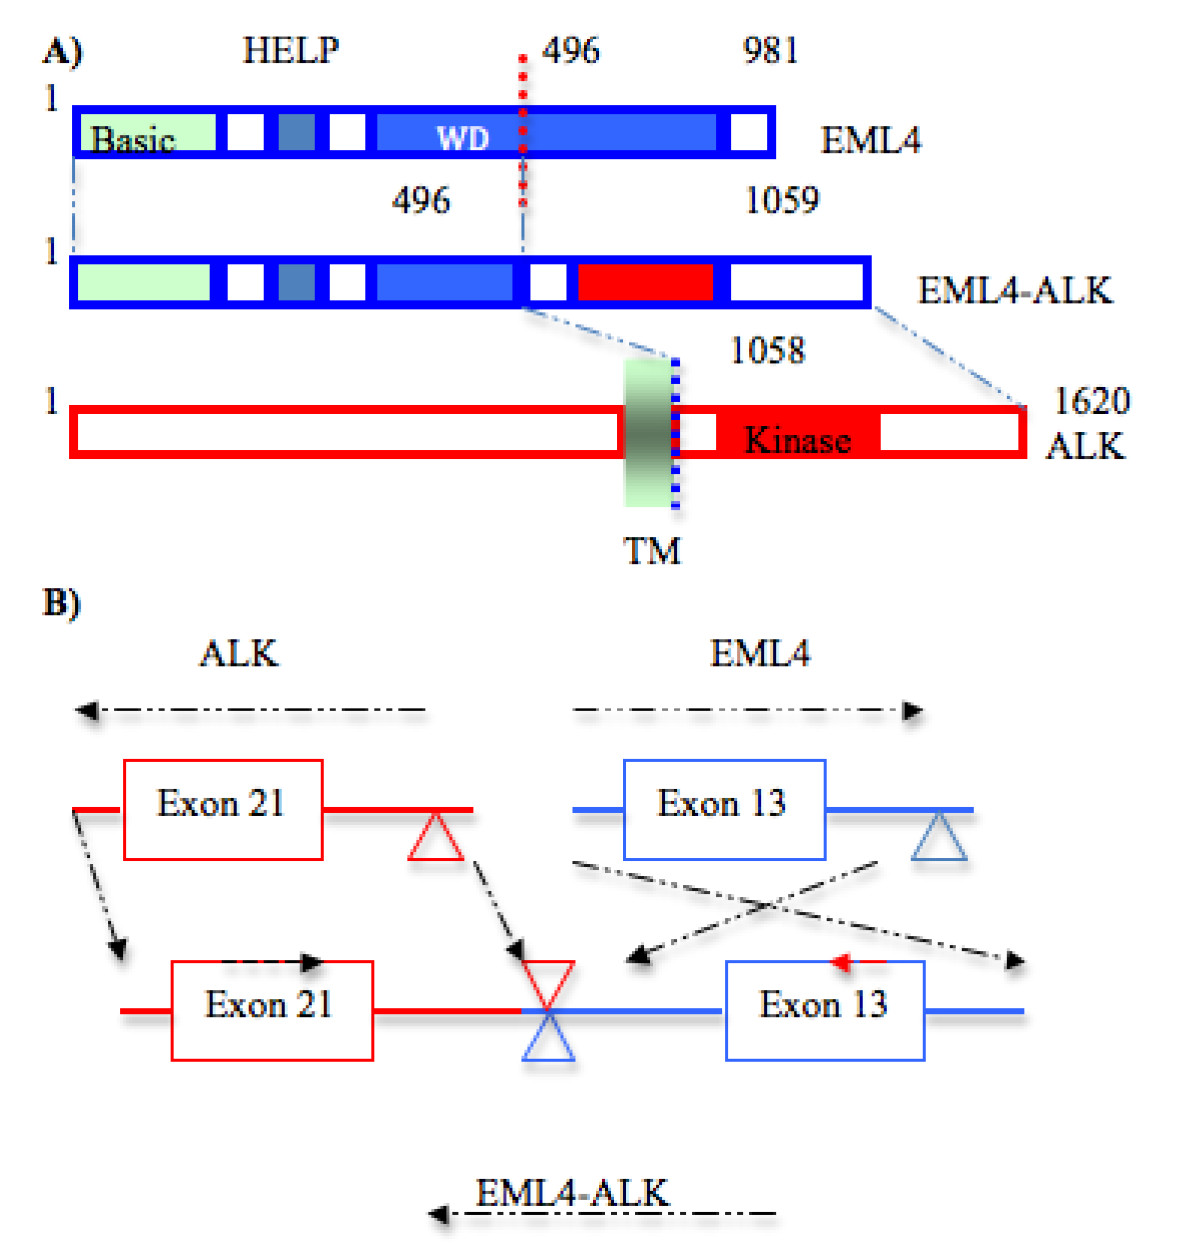 https://static-content.springer.com/image/art%3A10.1186%2F1756-8722-4-16/MediaObjects/13045_2011_Article_154_Fig2_HTML.jpg